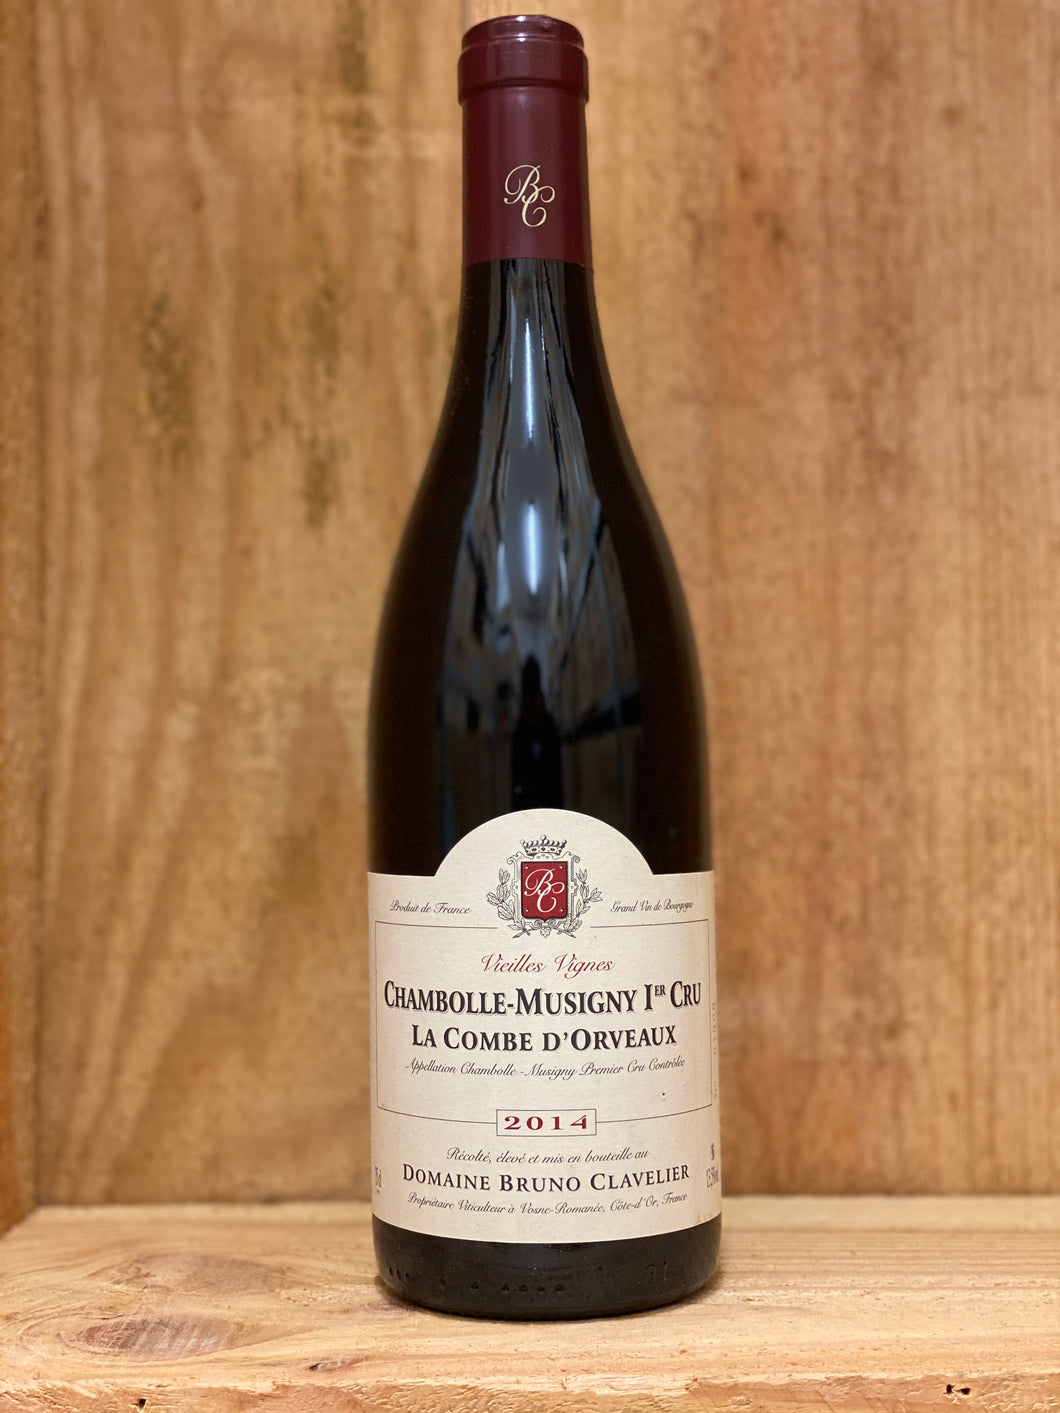 Domaine Bruno Clavelier  2014 Chambolle-Musigny 1er Cru La Combe D'Orveaux